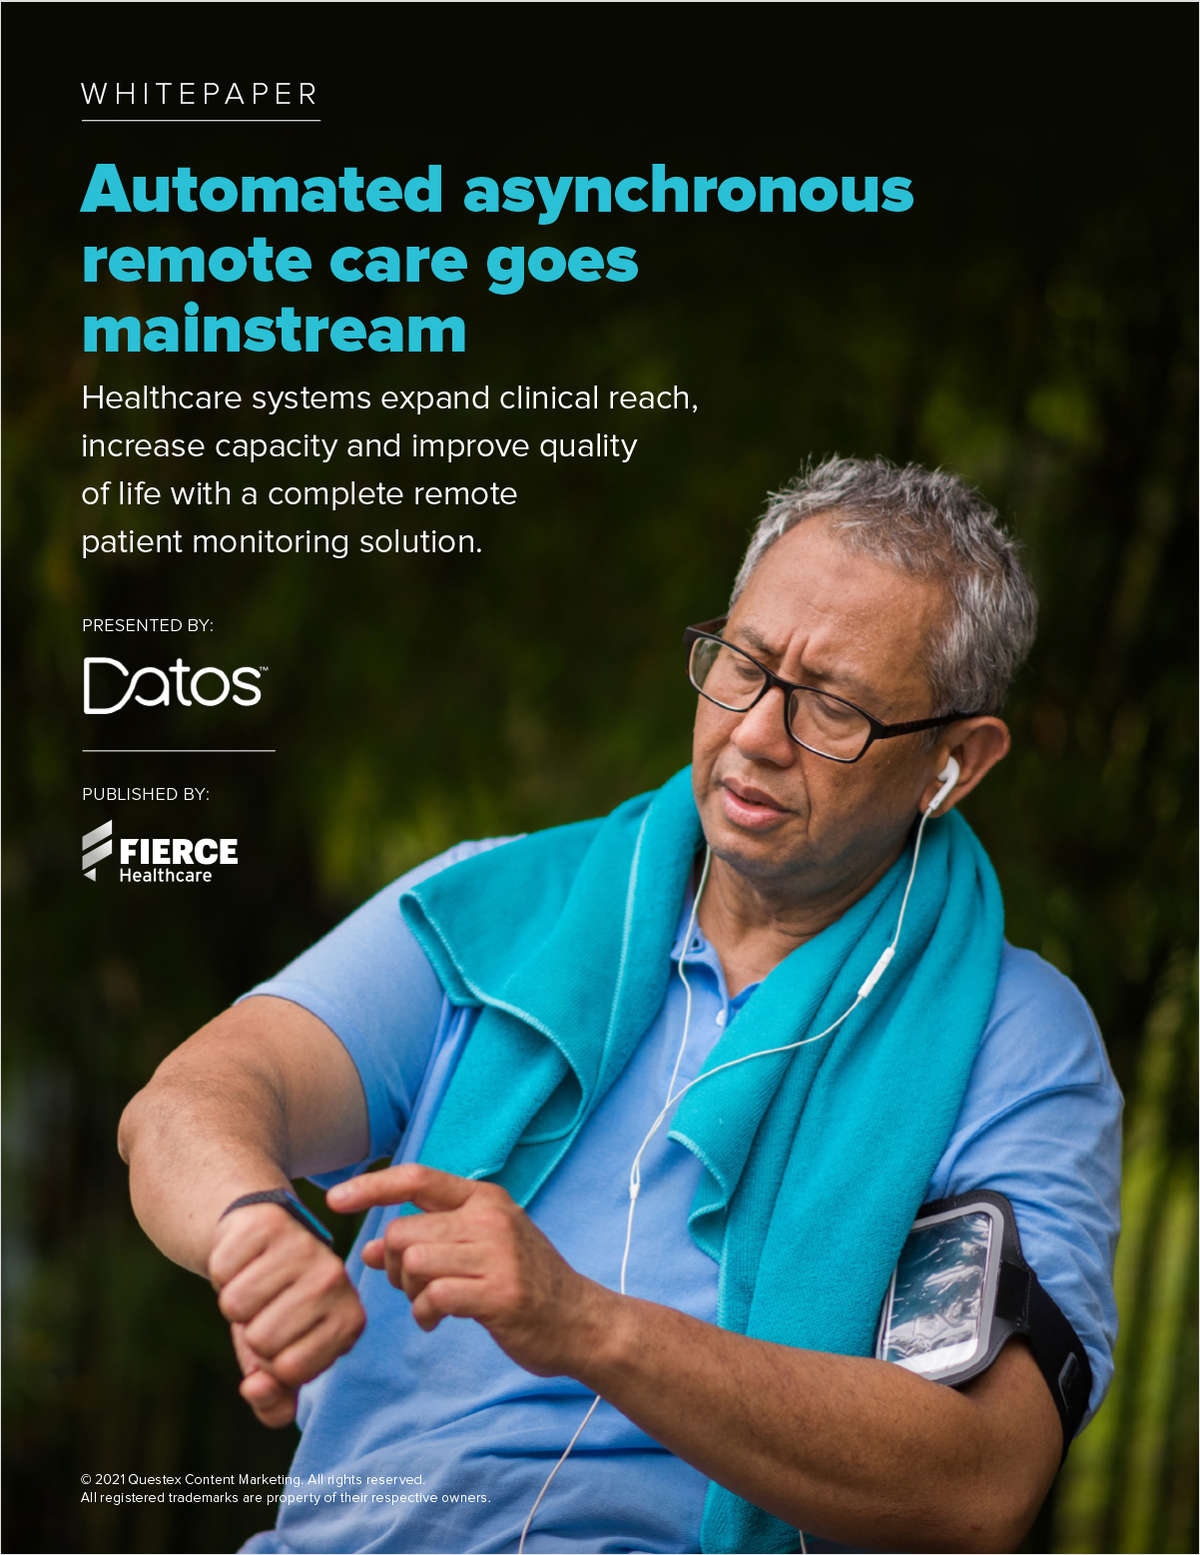 Automated asynchronous remote care goes mainstream